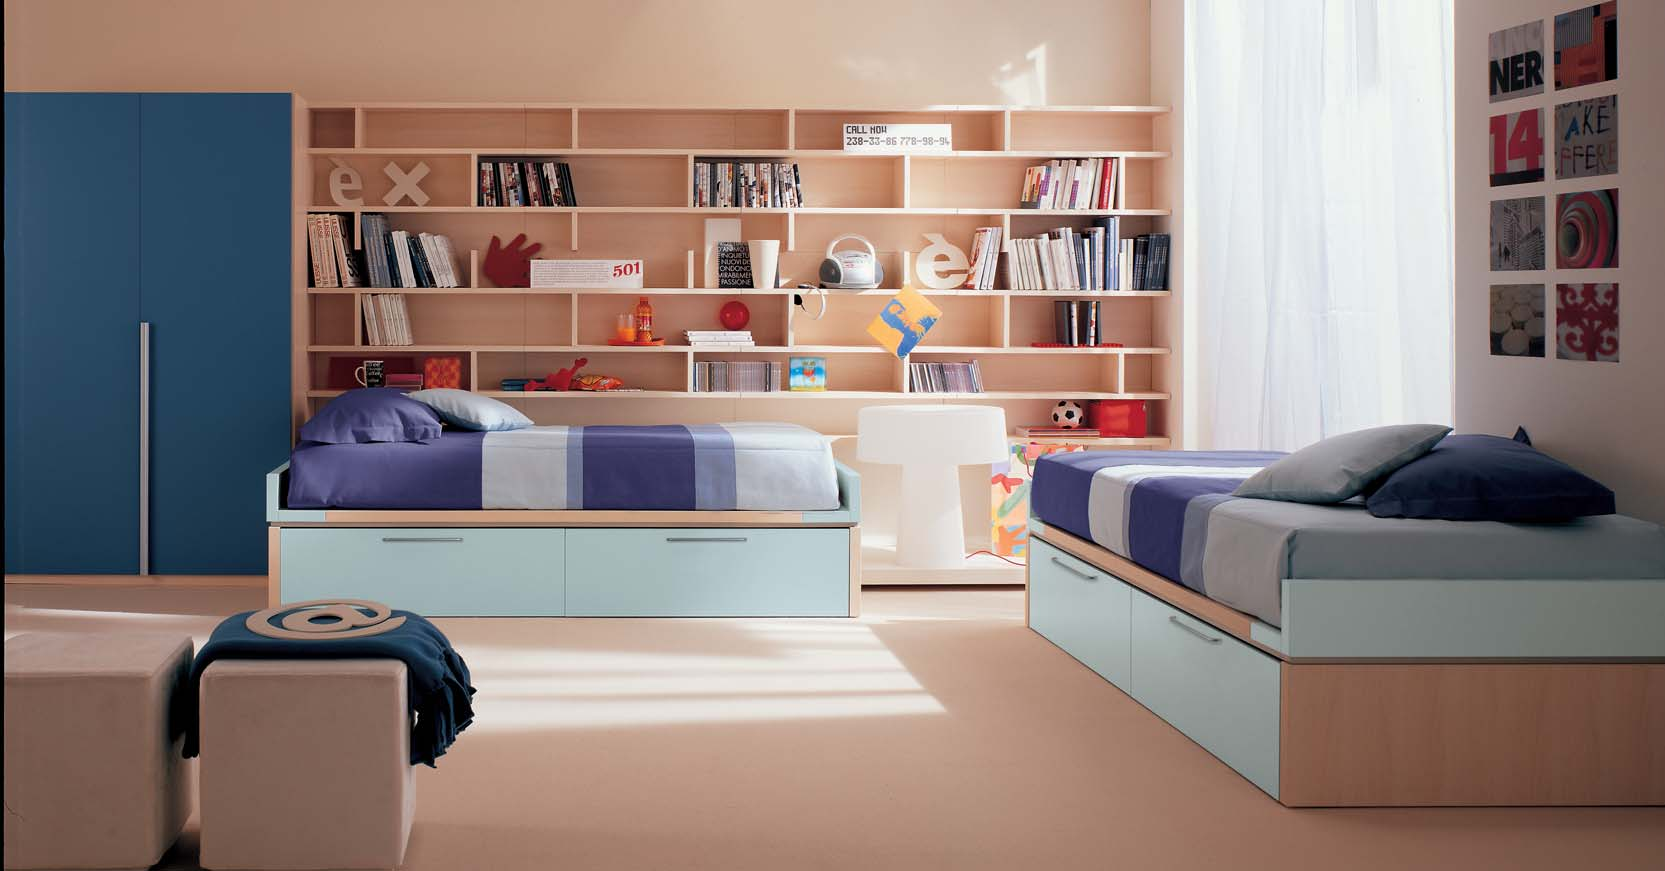 Kids bedroom with book shelves Bookshelves in bedroom ideas